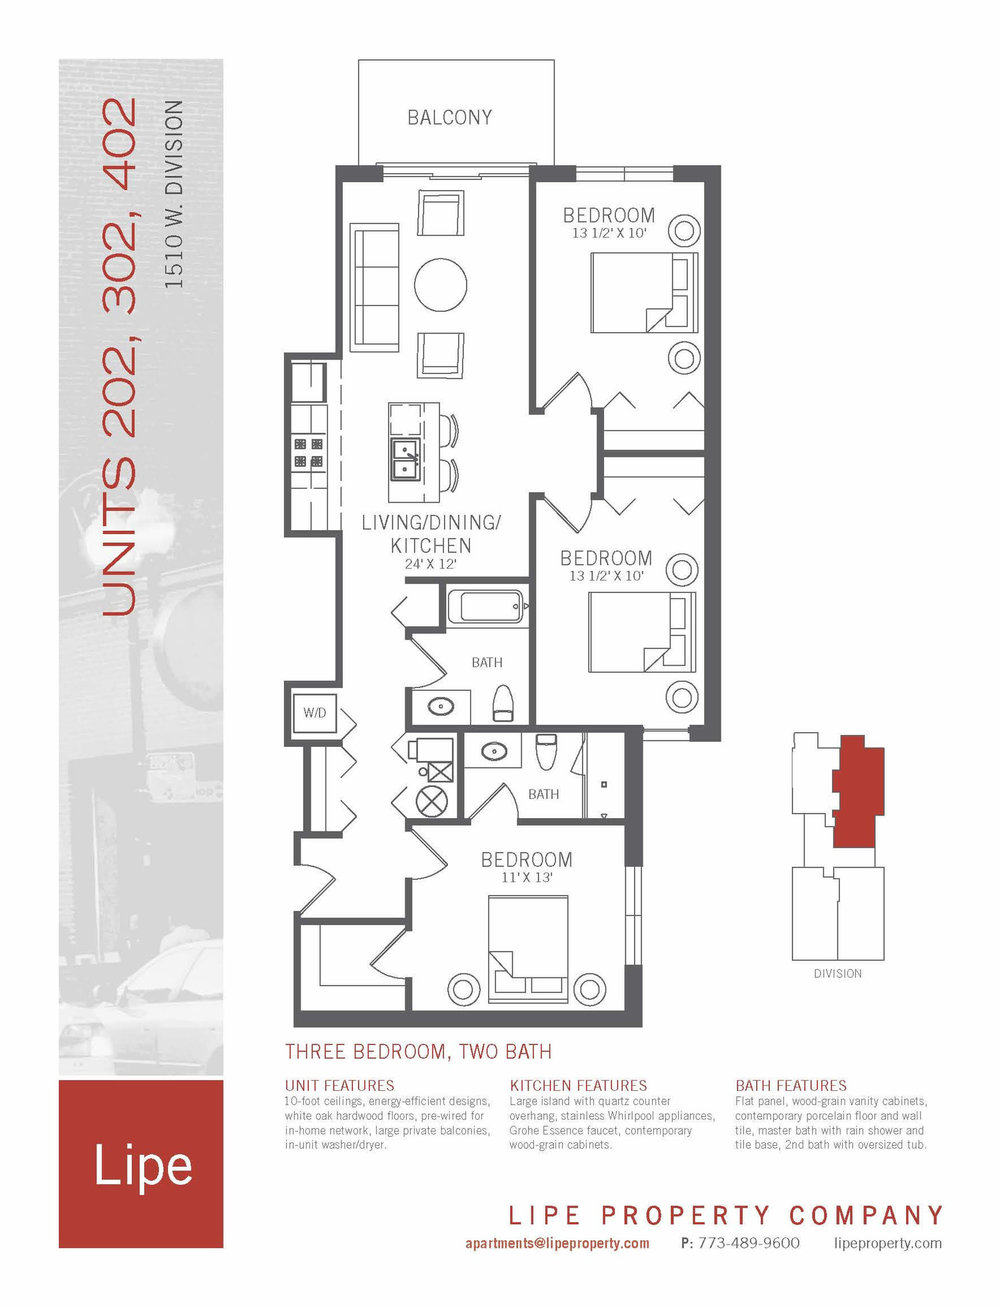 apartment-for-rent-1510-W-Division-Chicago-202,302,402-Floor-Plan.jpg